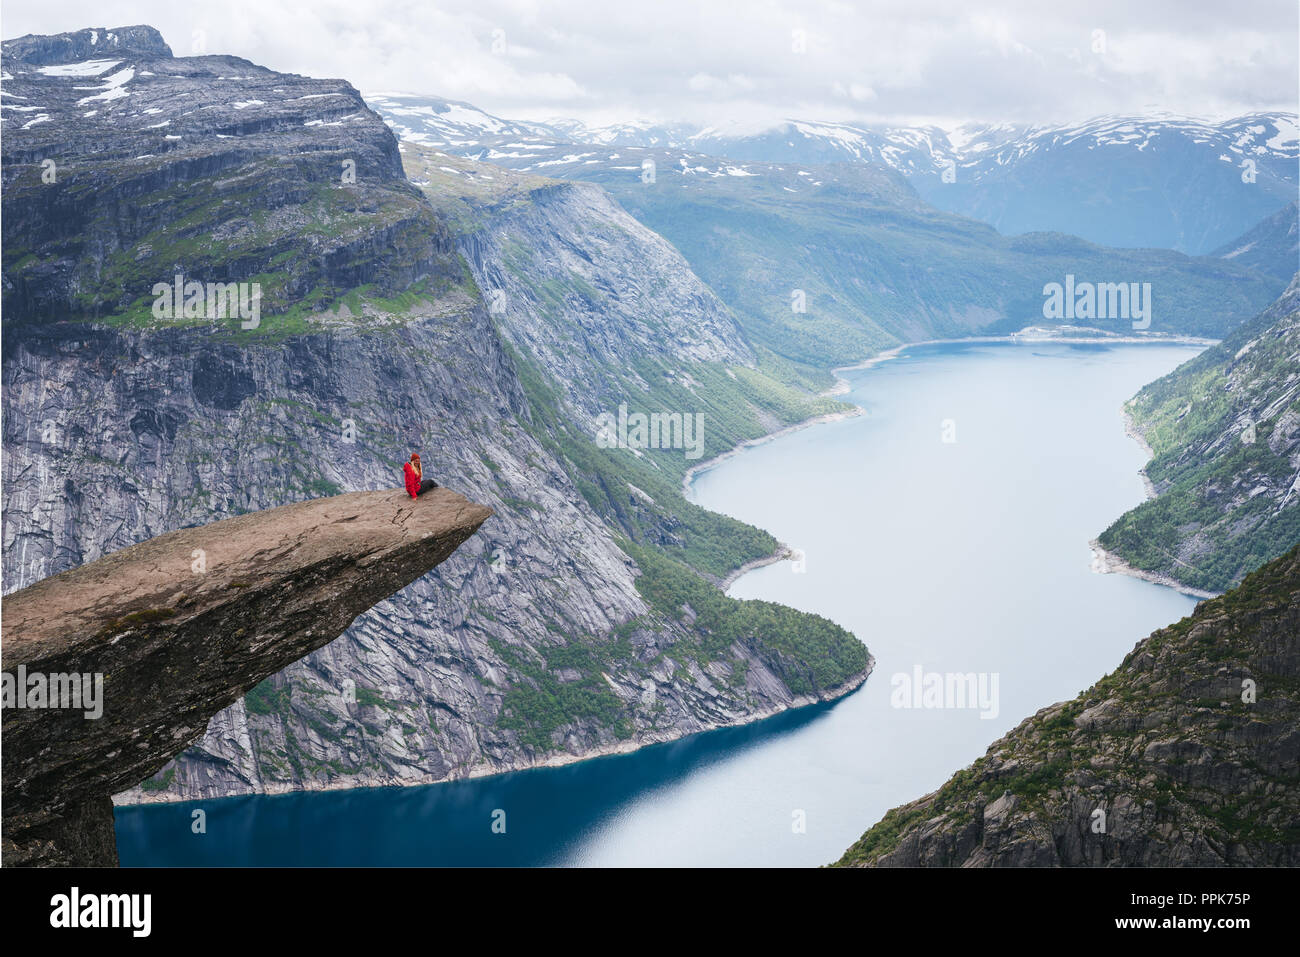 Perfect track adventure to Trolltunga. Amazing place with view of Ringedalsvatnet lake and mountains - Stock Image